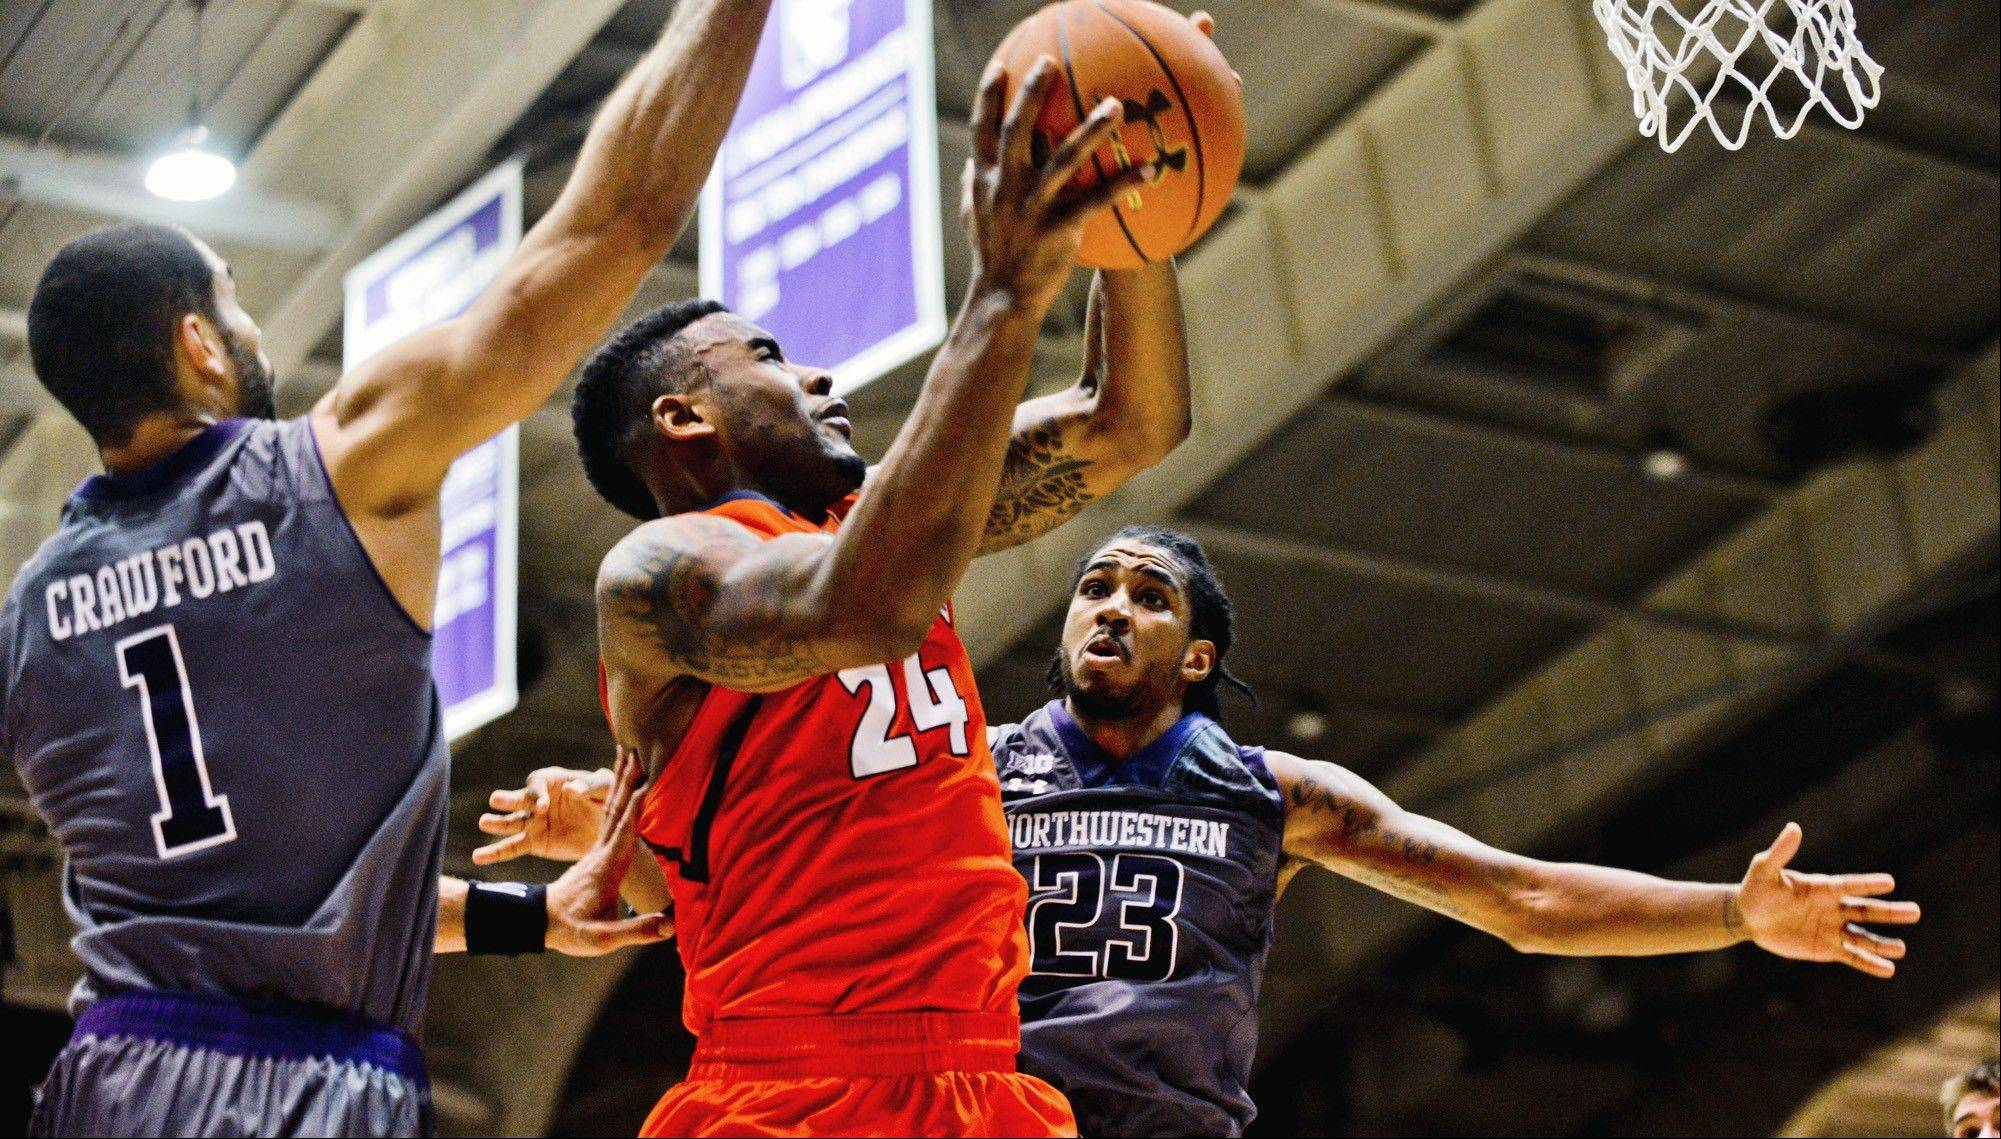 Illinois guard Rayvonte Rice (24) shoots between Northwestern's Drew Crawford (1) and guard JerShon Cobb (23) during the second half of an NCAA college basketball game in Evanston, Ill., on Sunday, Jan. 12, 2014. Northwestern won 49-43.